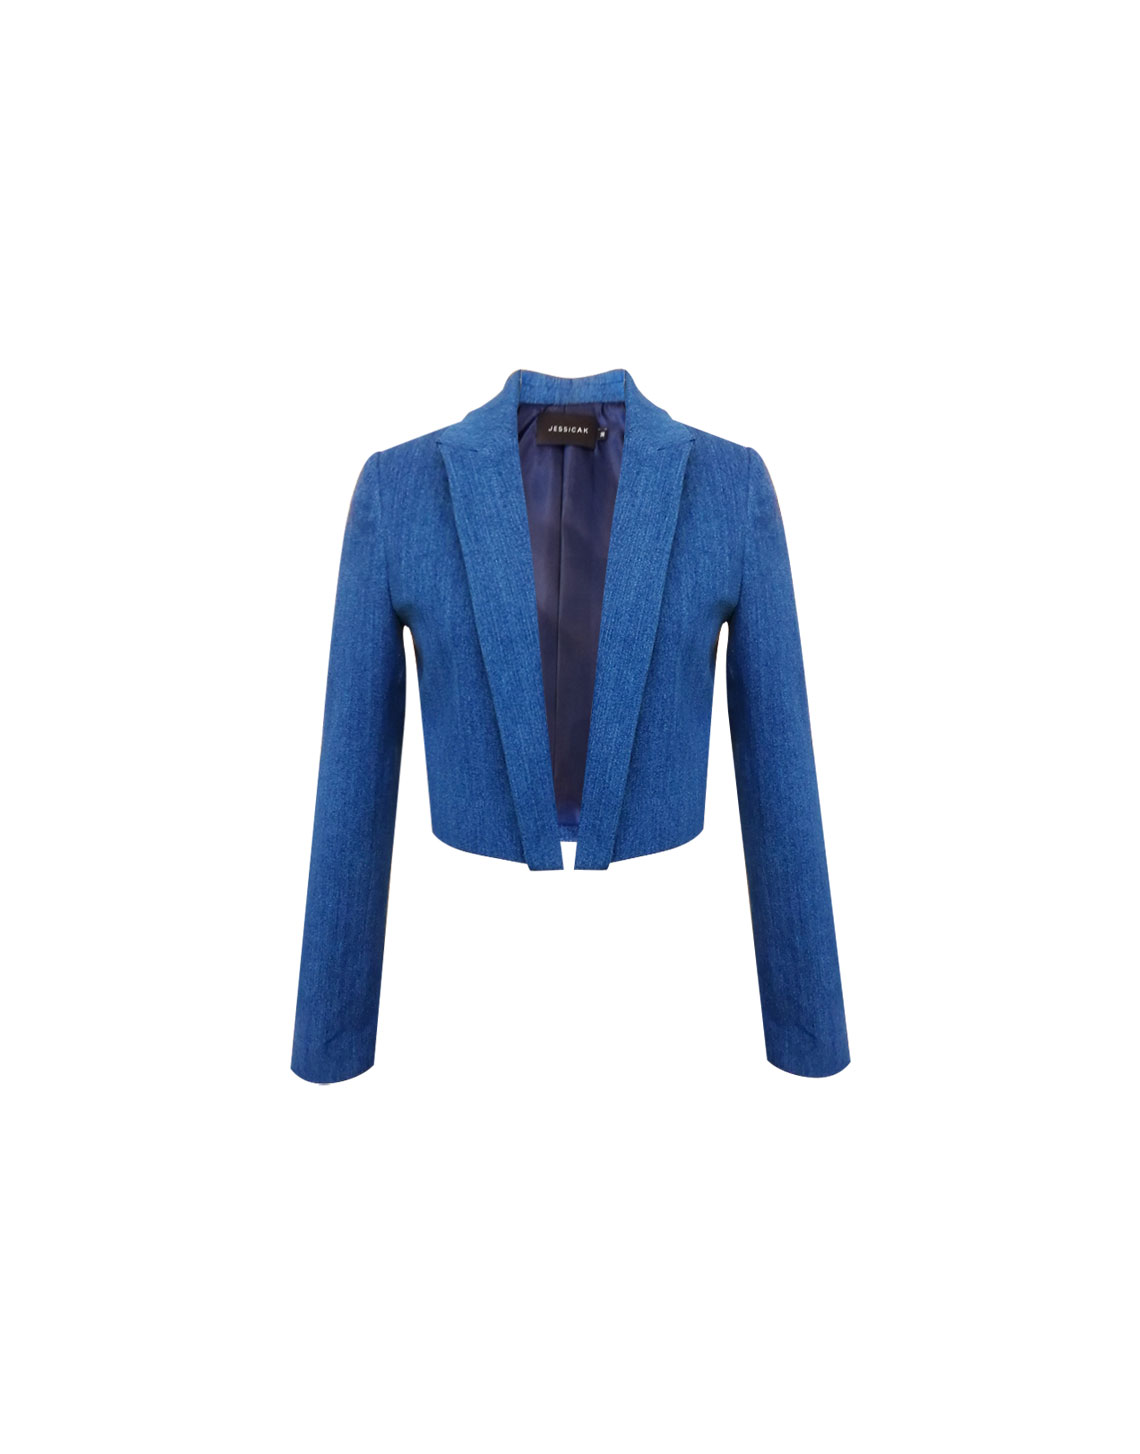 Fly Jacket - Denim by Jessica K on curated-crowd.com